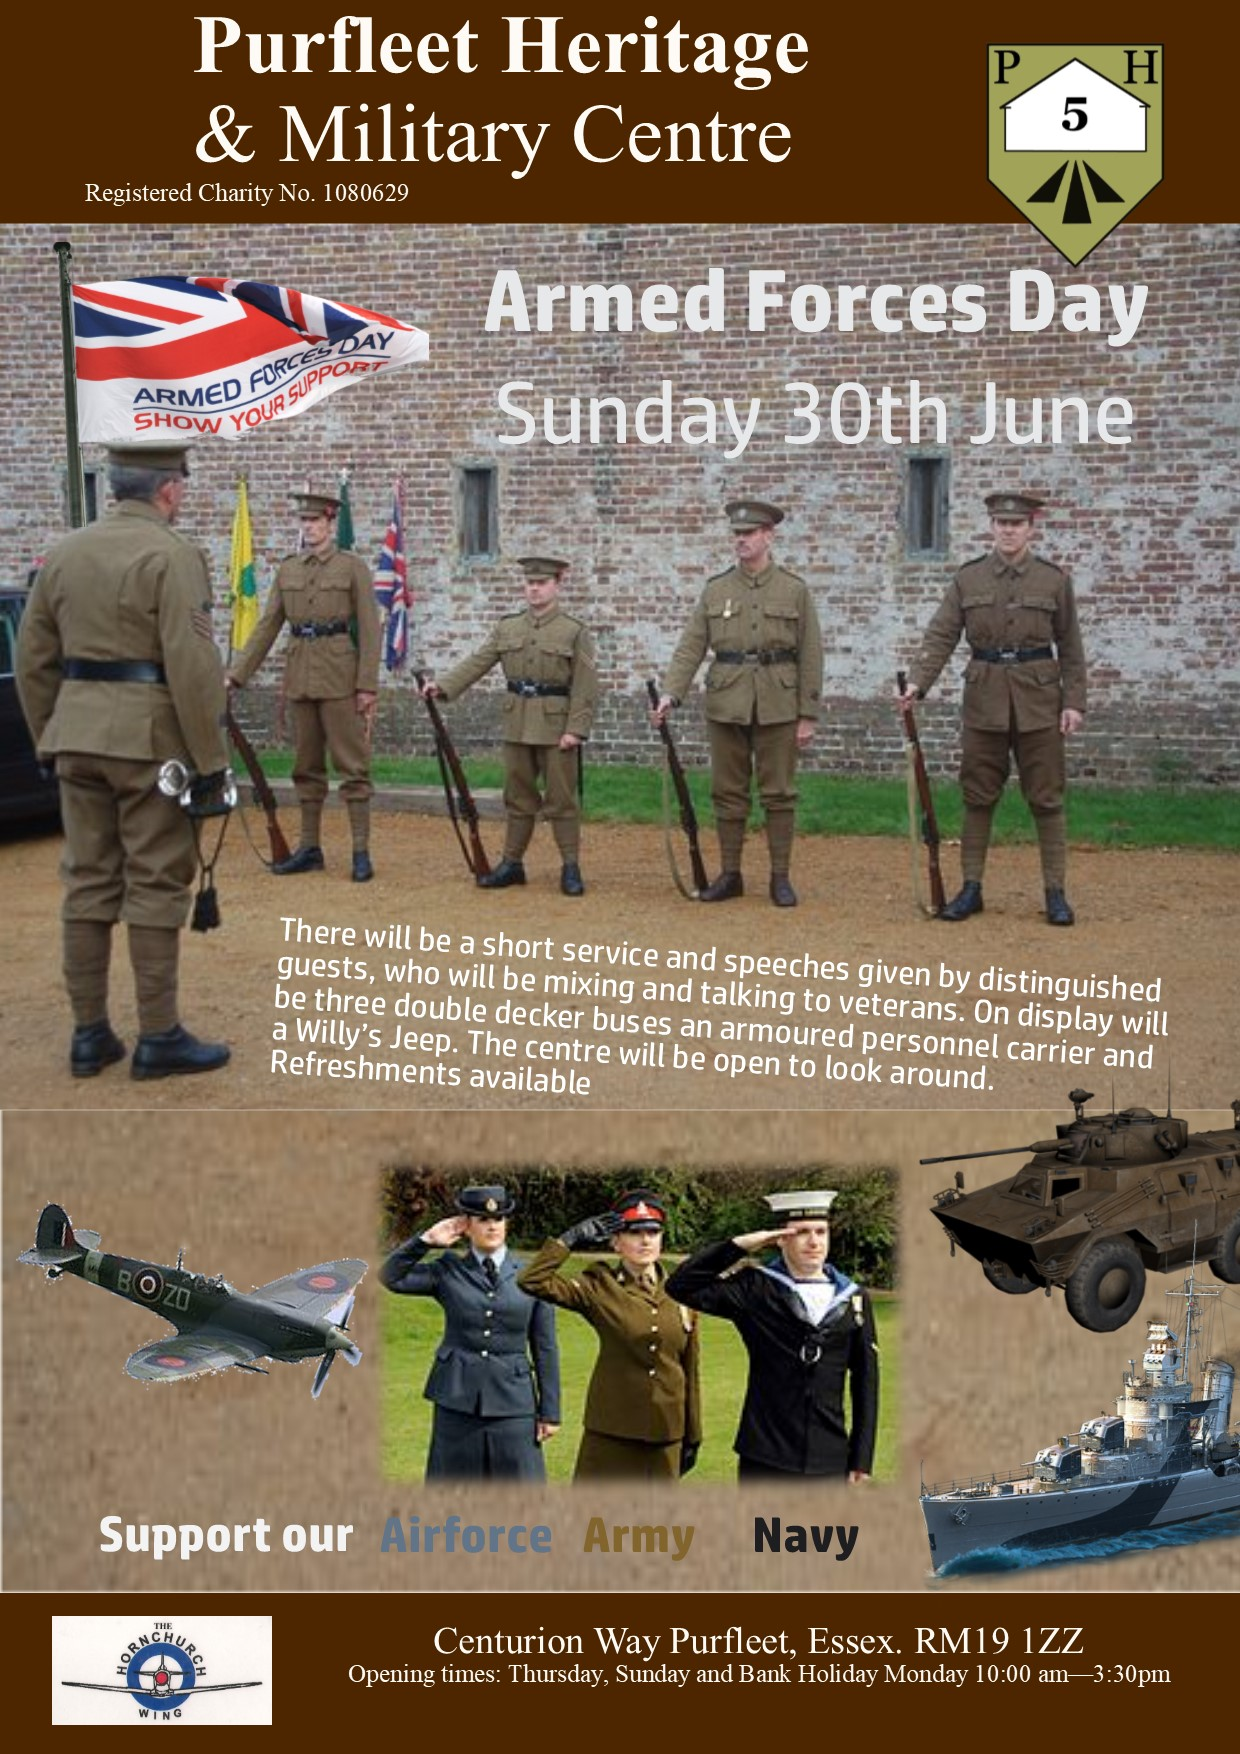 Armed Forces Day at Purfleet